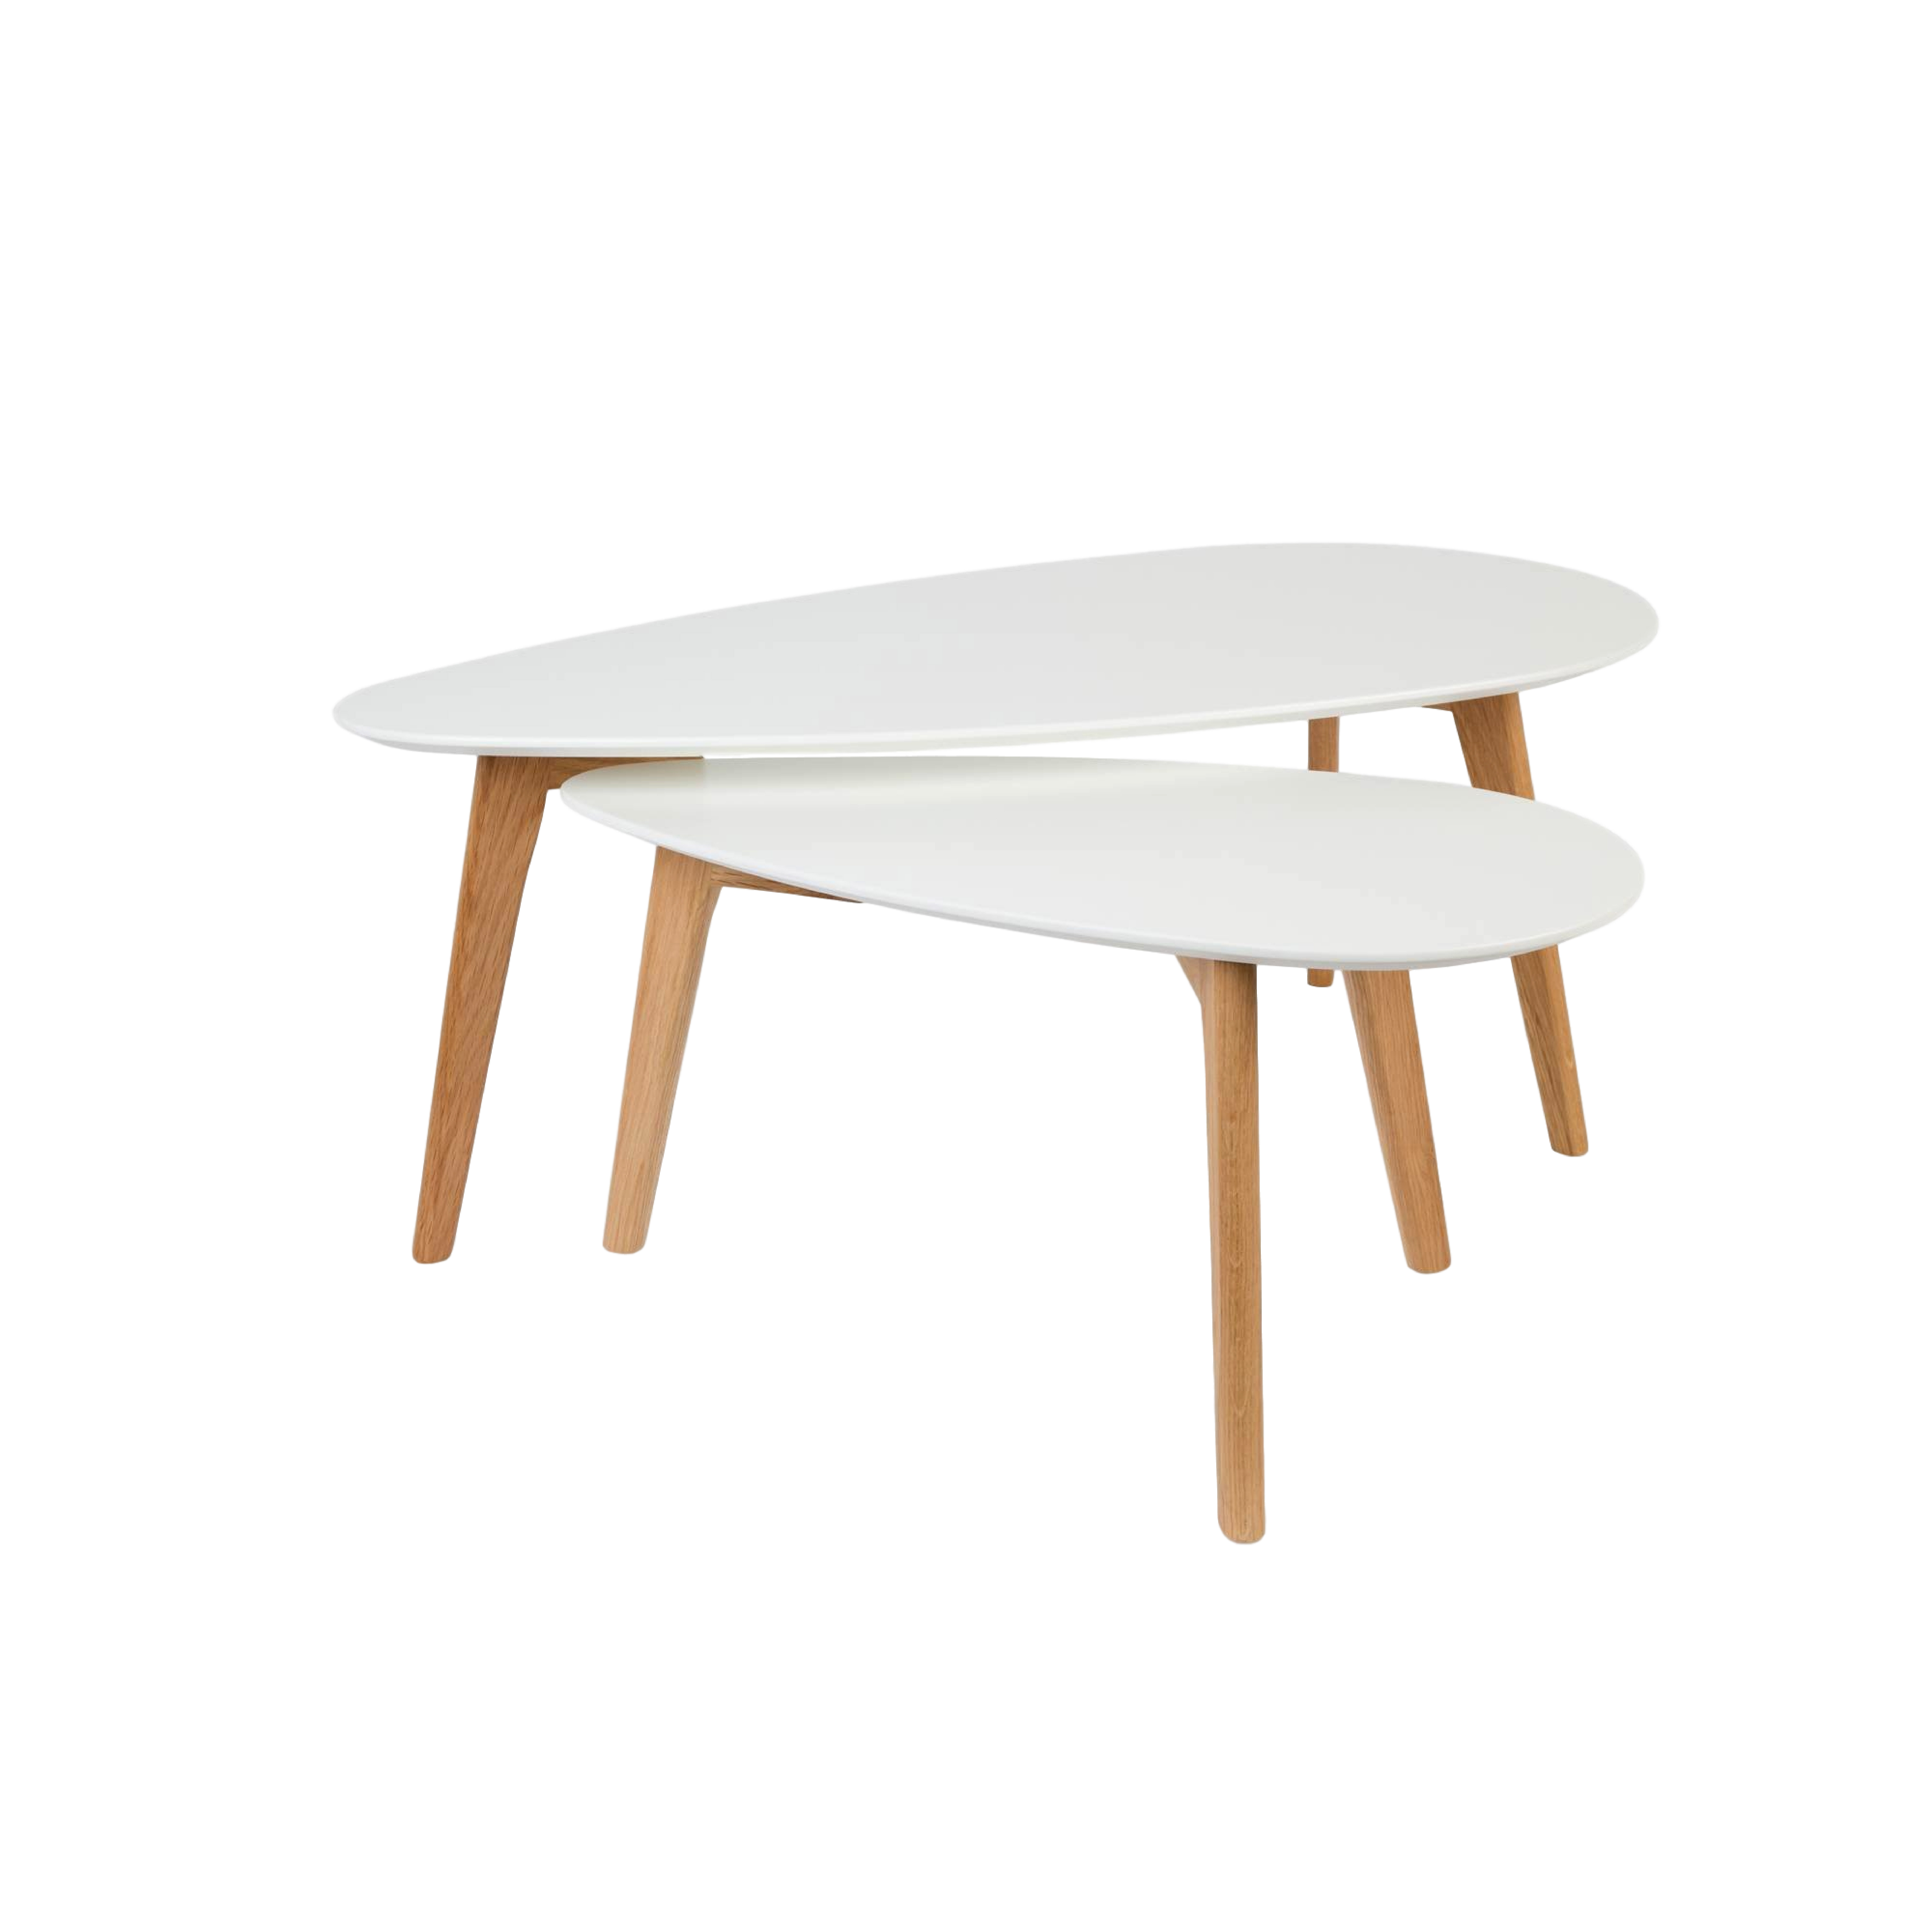 TABLES BASSES BICOLORES 3 SUISSES COLLECTION – 199€